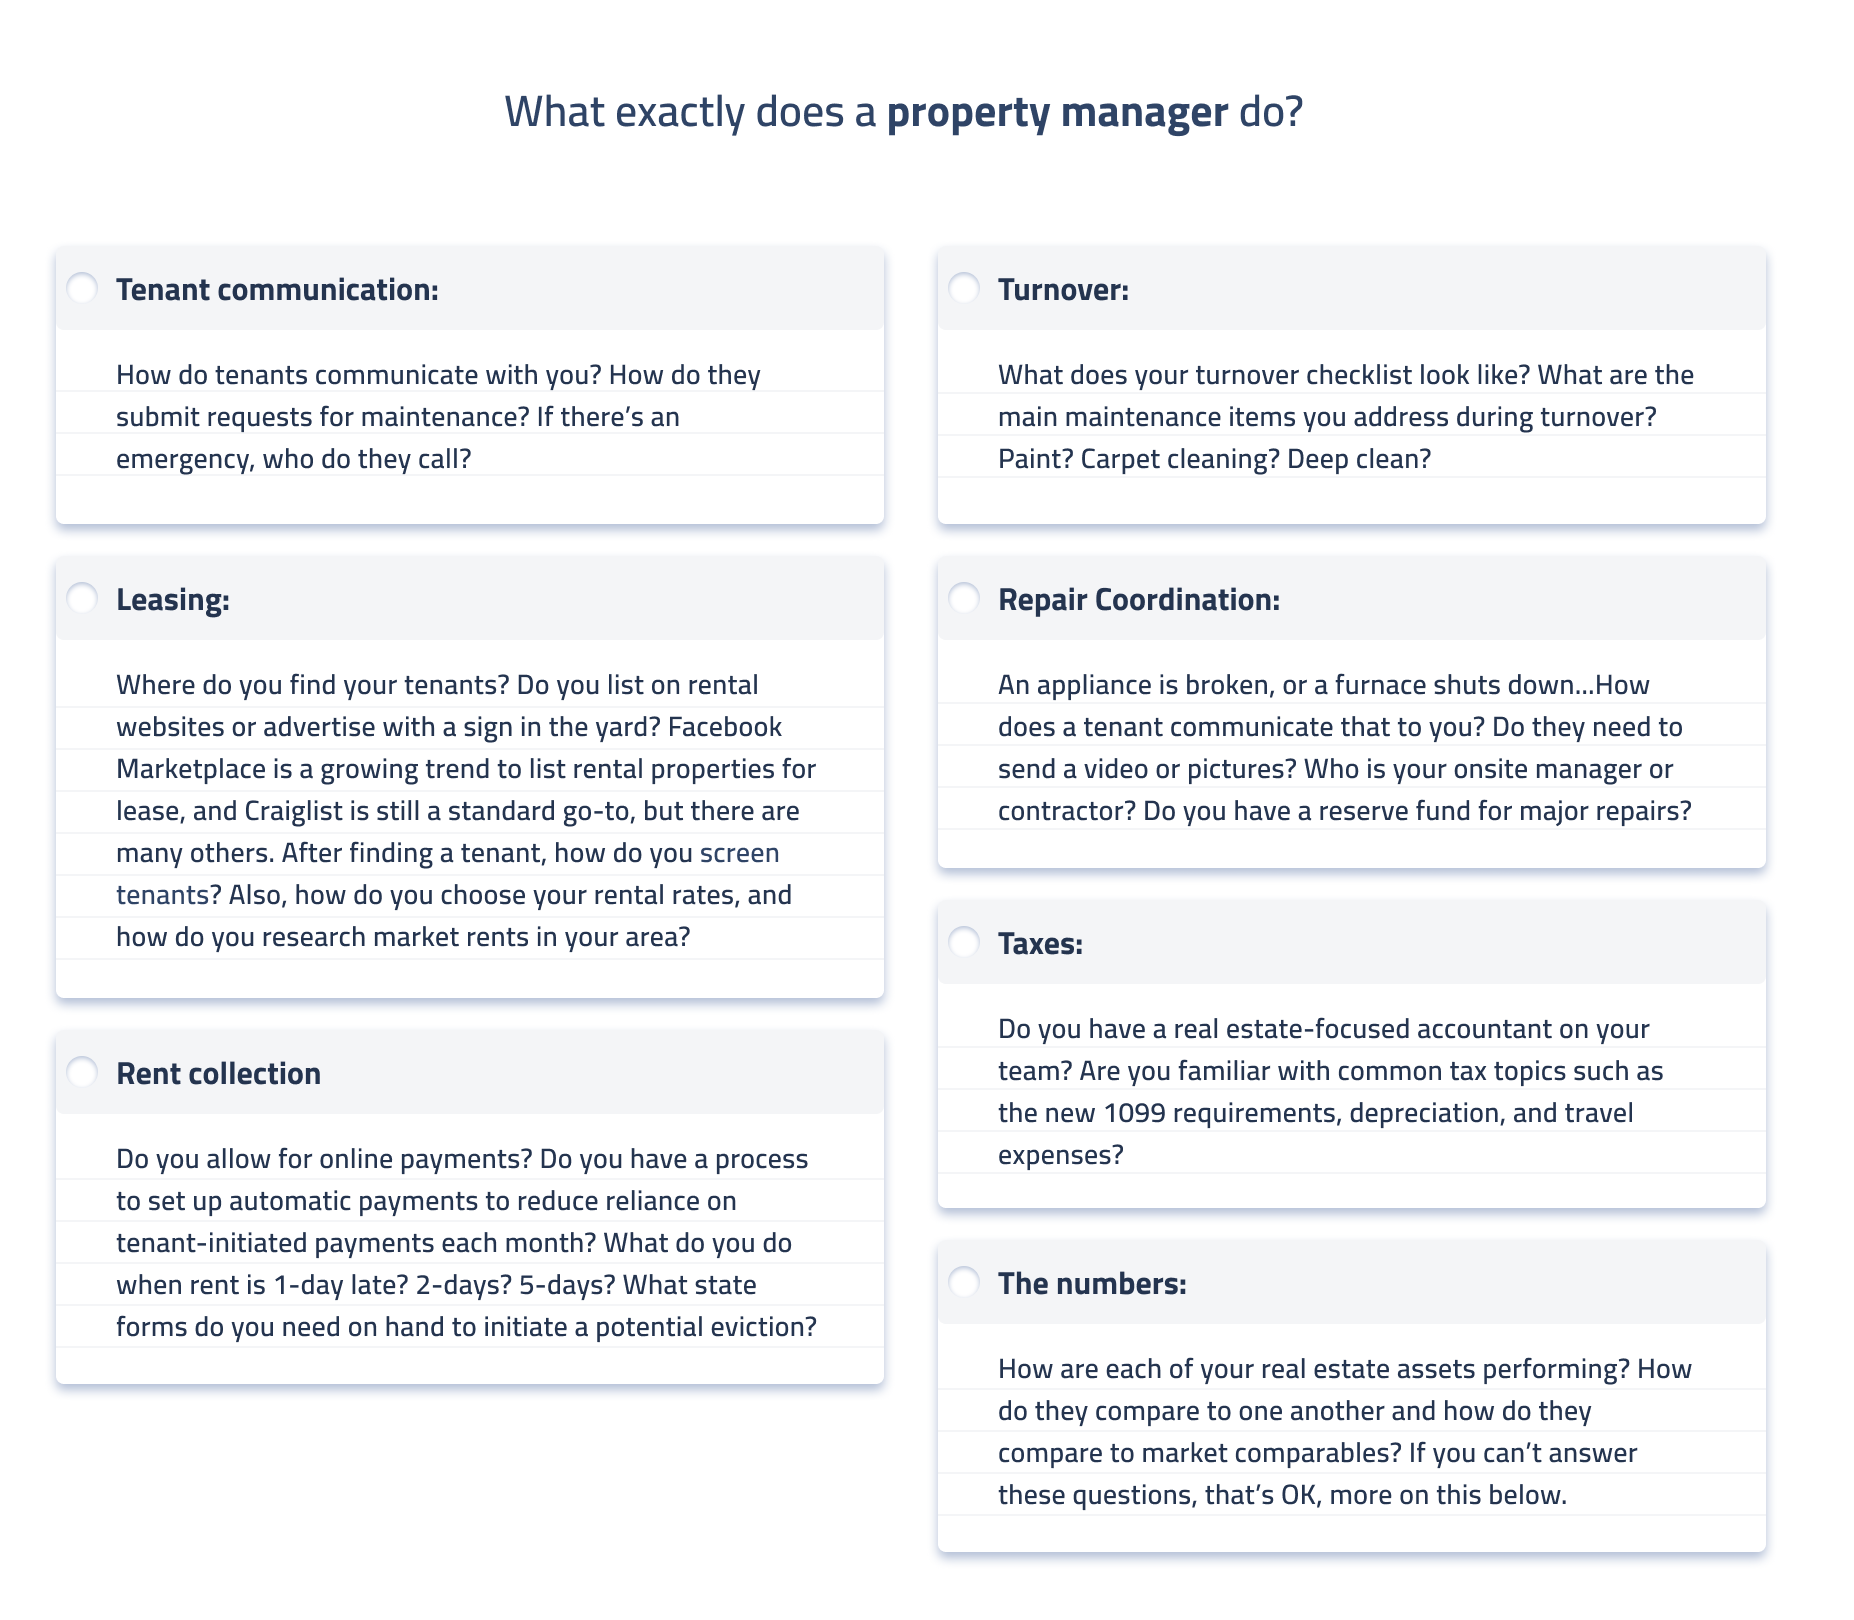 What exactly does a property manager do?